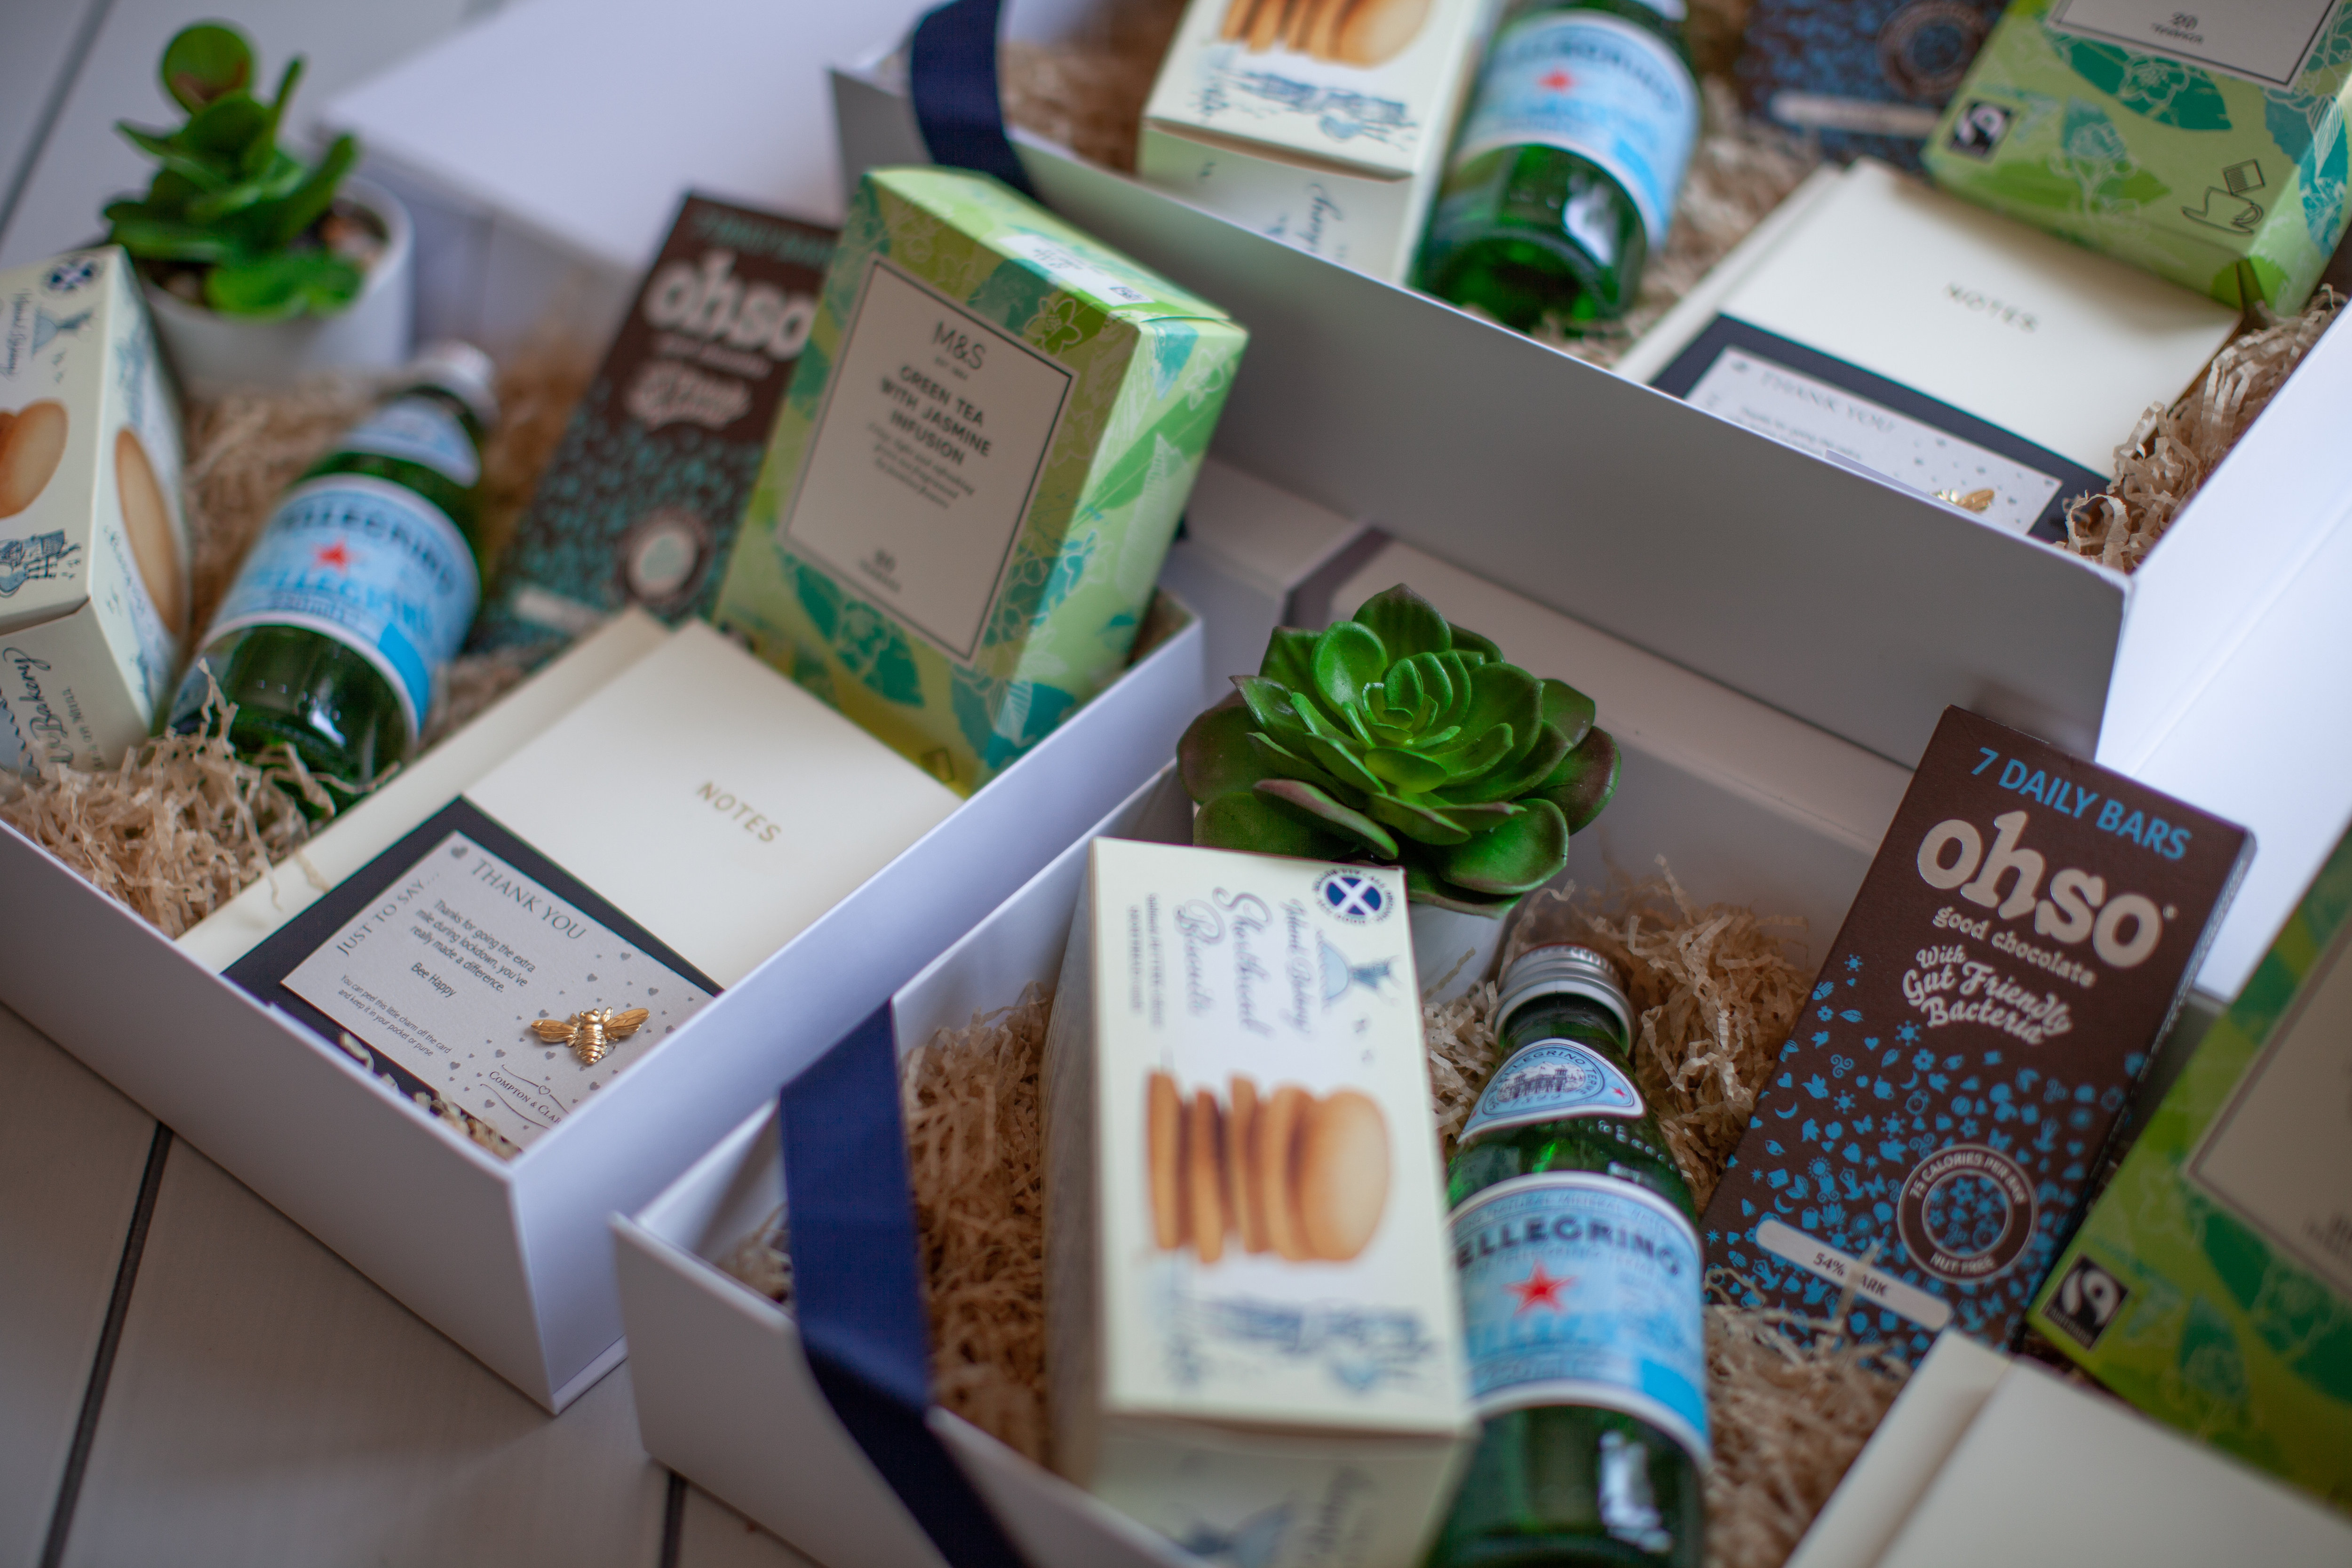 Corporate gift boxes which includes Ohso Chocolate Dark 70% cocoa - 7 bars in 1